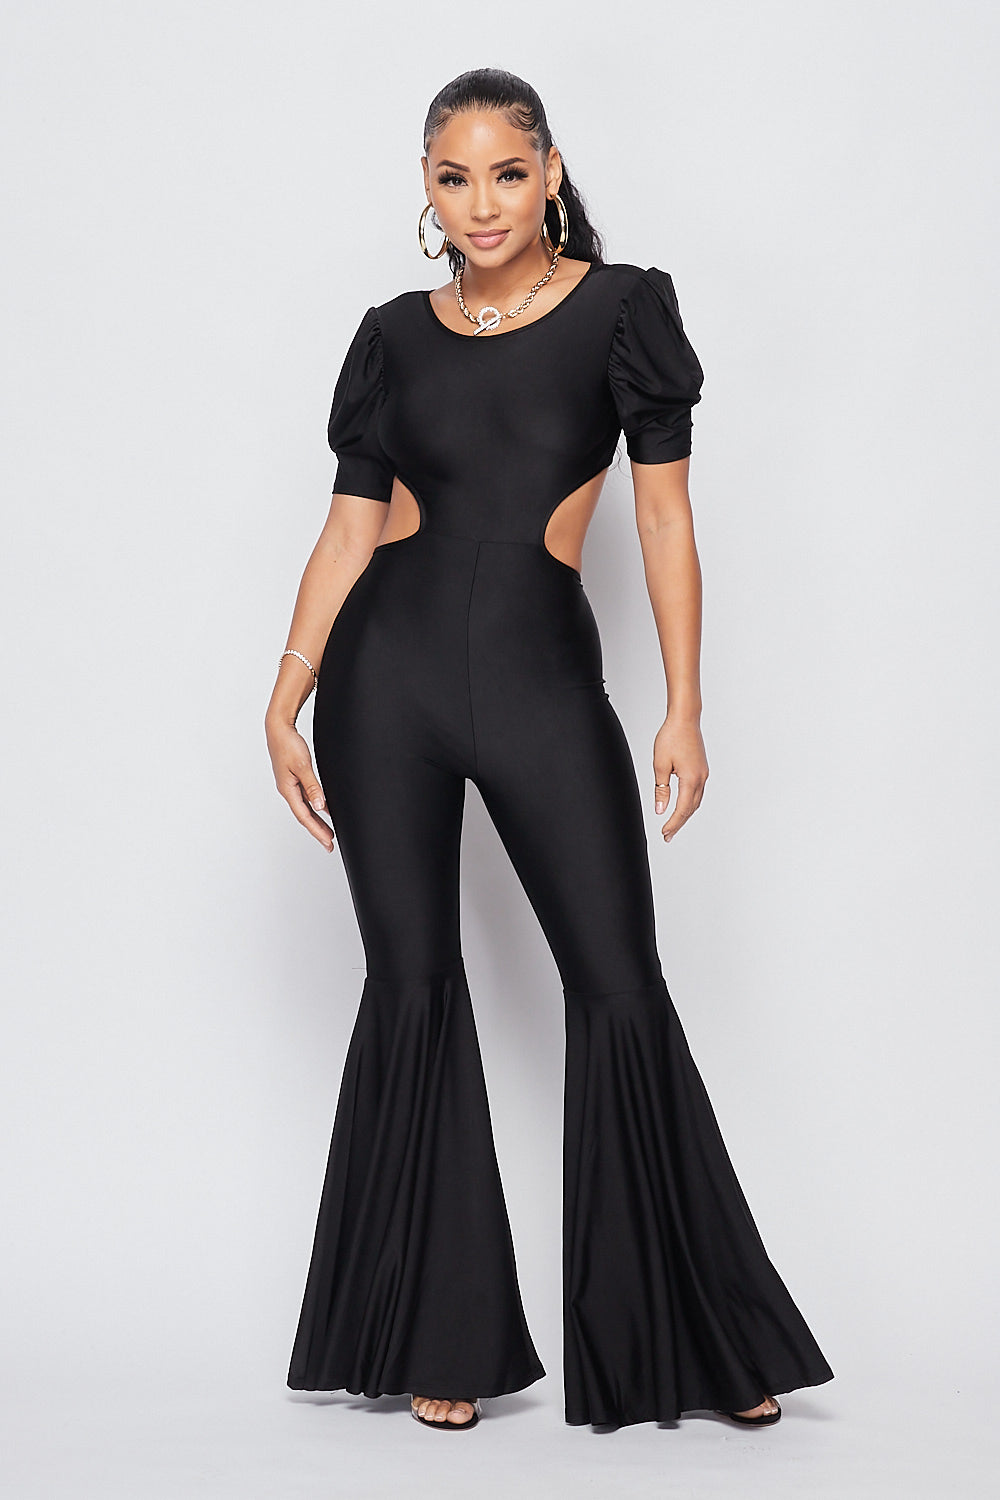 Sexy Open Back Bell Bottom Jumpsuit-BLACK - Fashion House USA